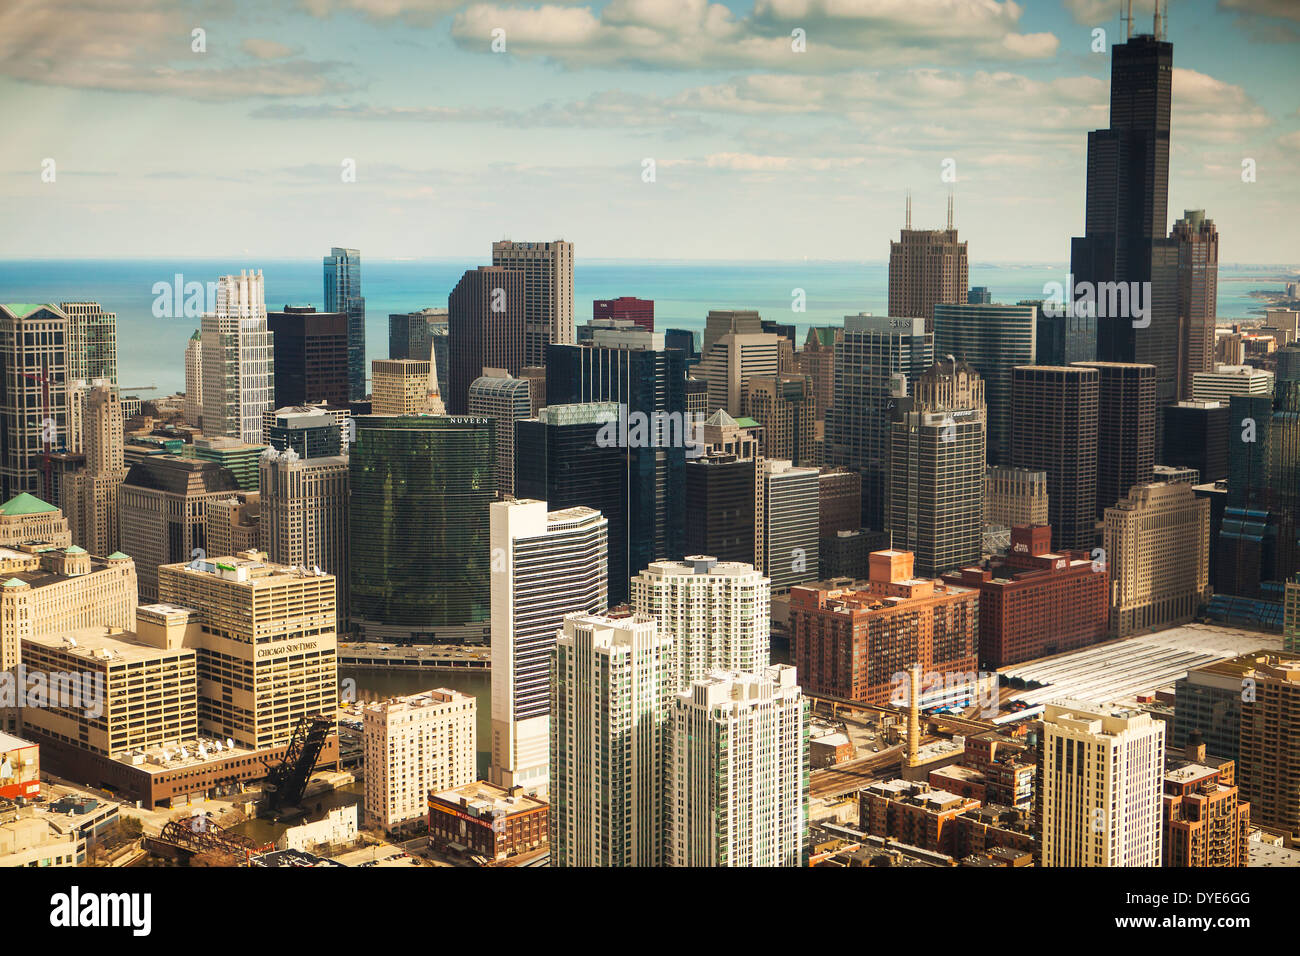 Aerial view of Chicago, Illinois - Stock Image